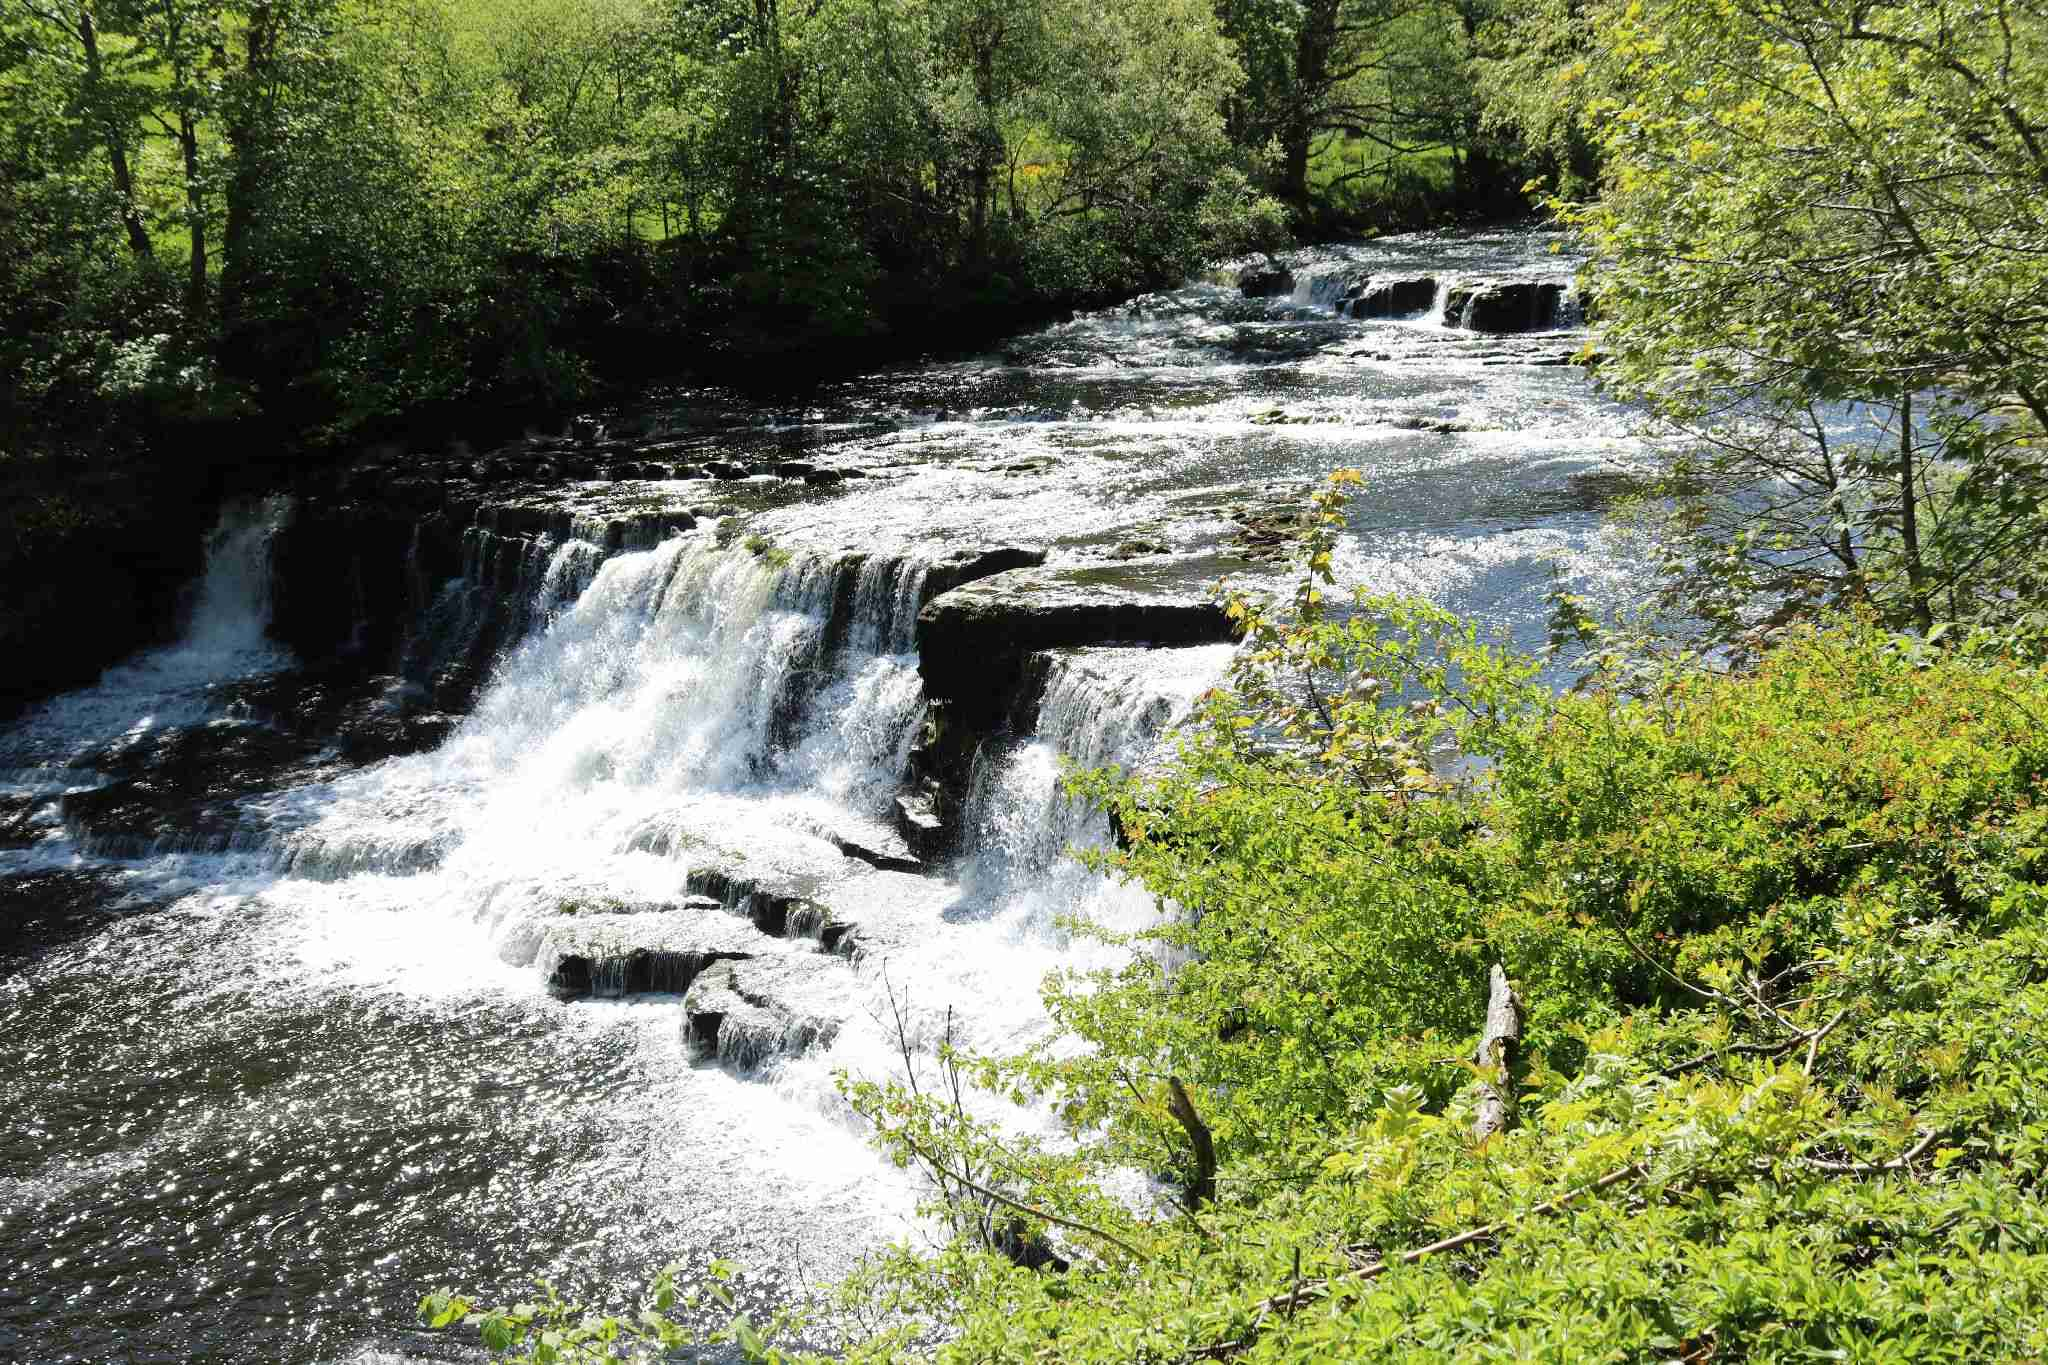 Middle falls in river Ure